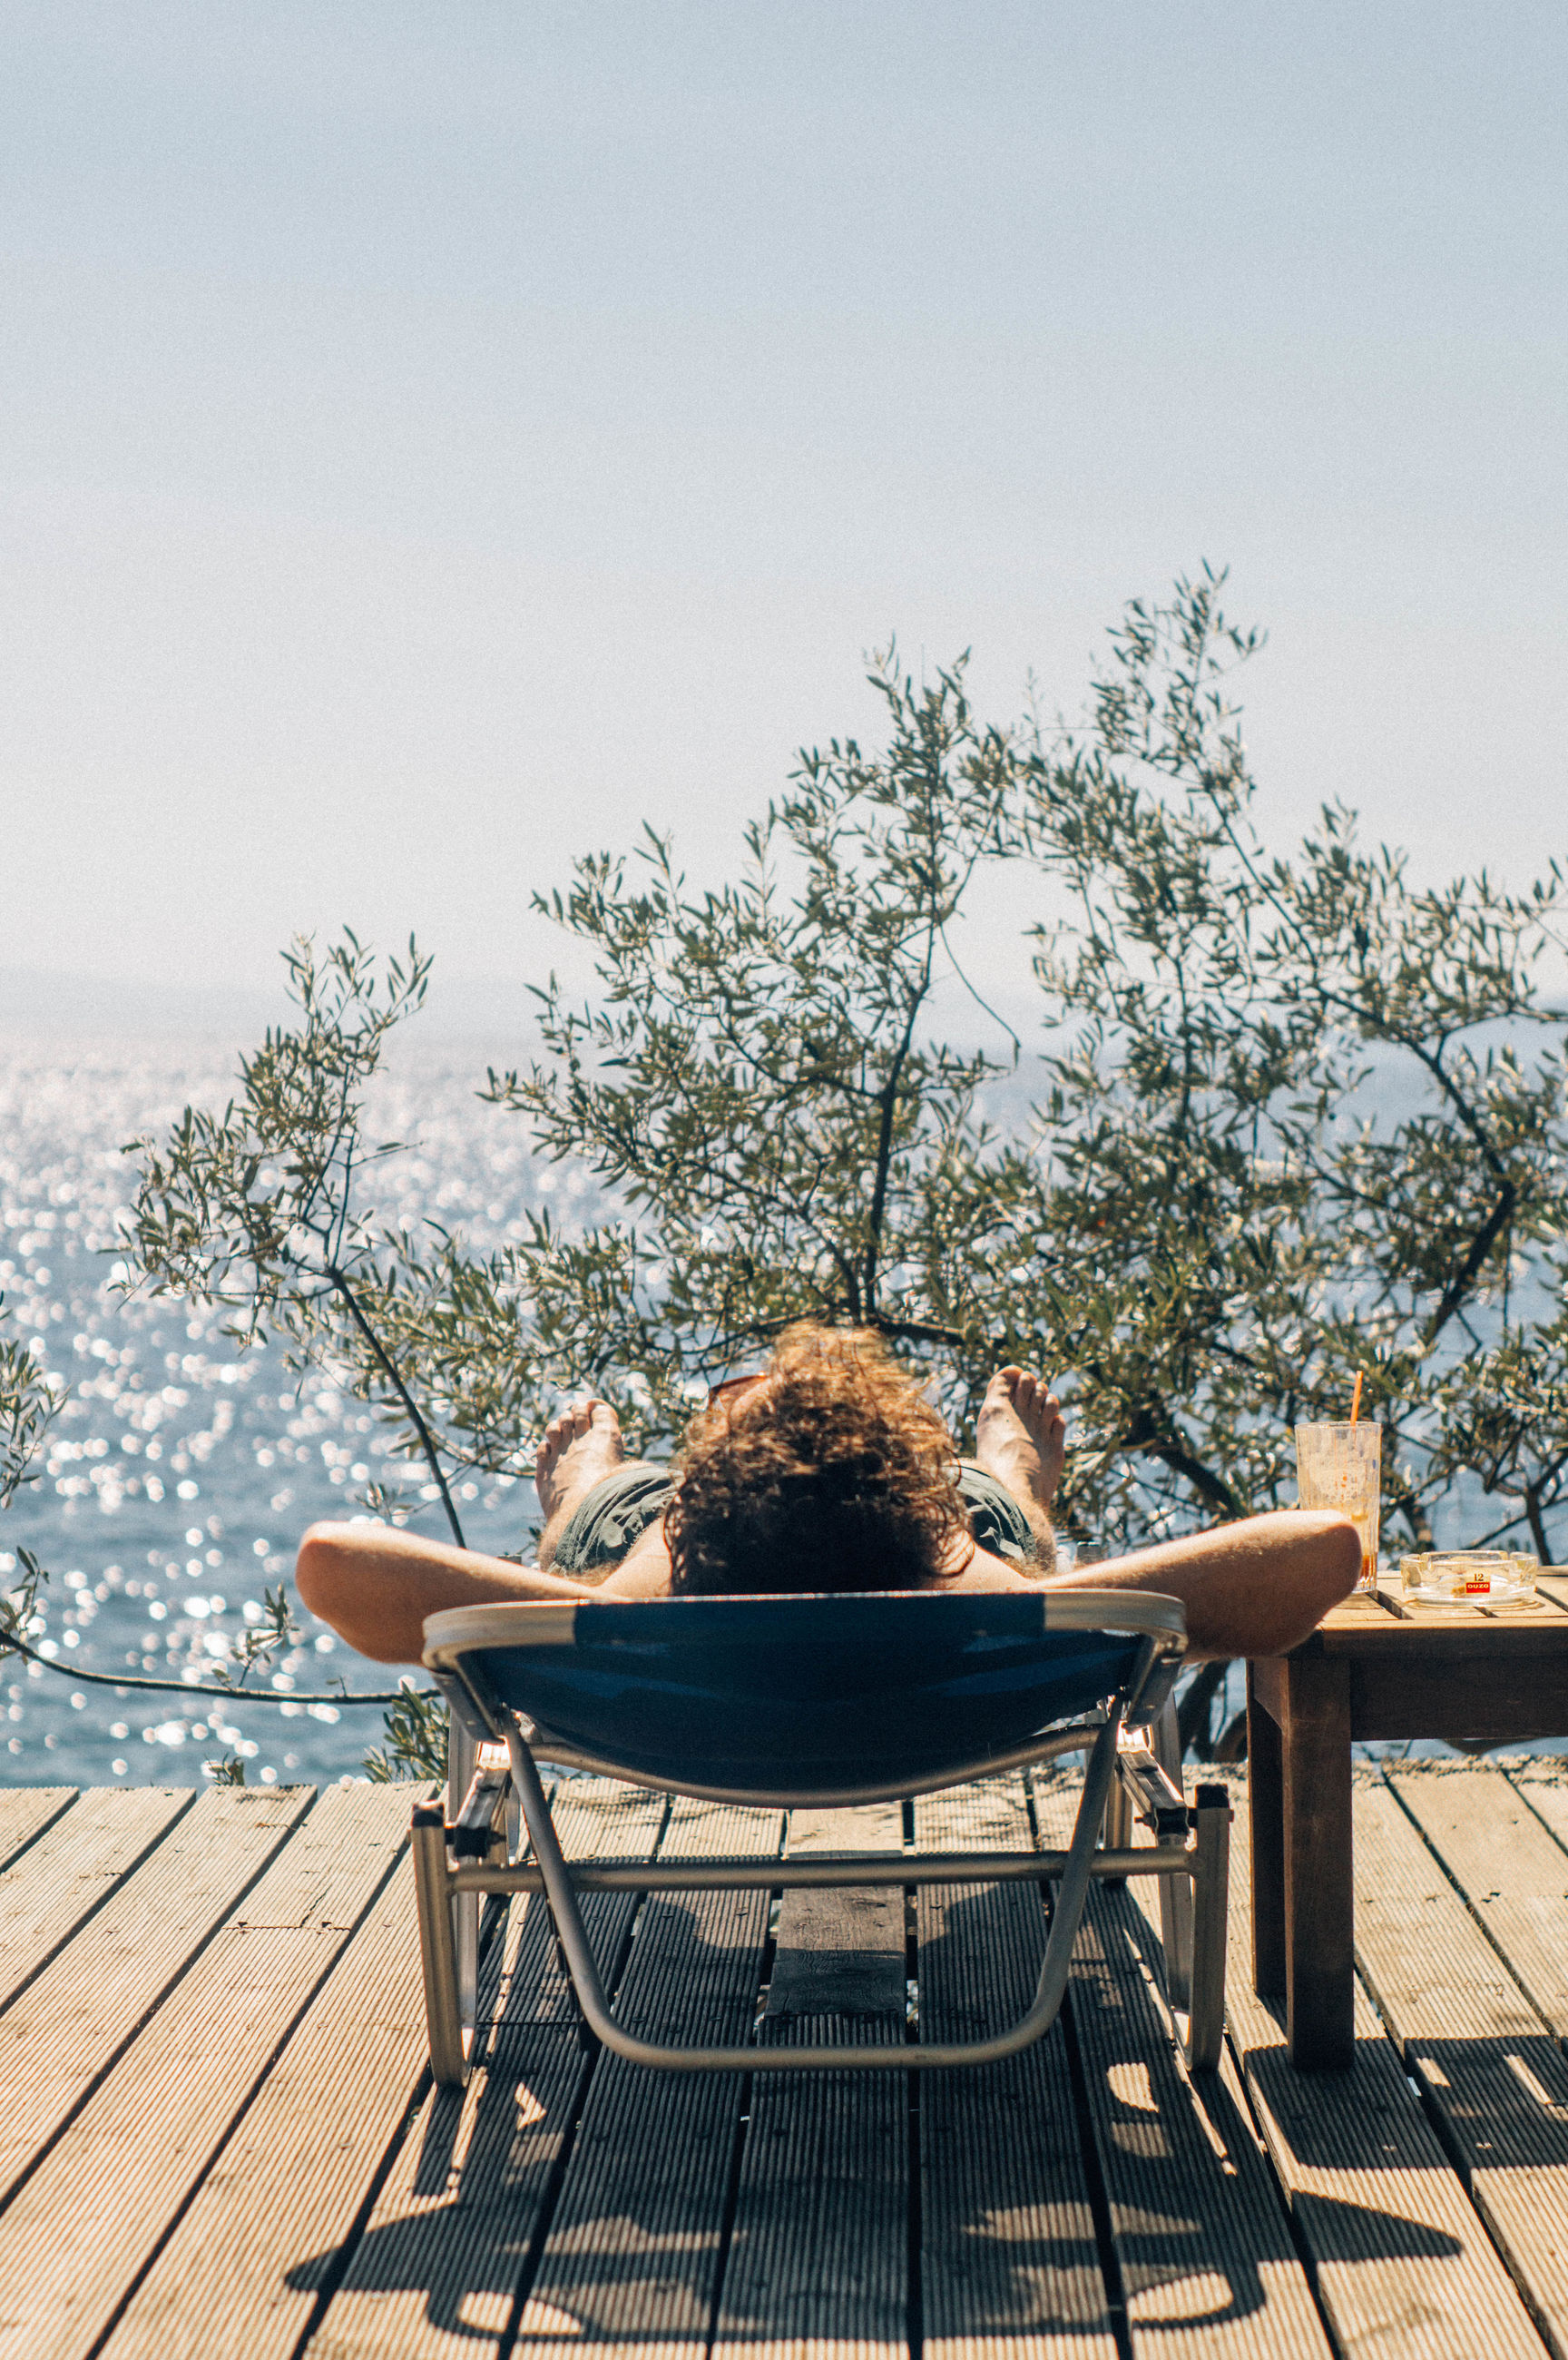 Rear view of man relaxing outdoors